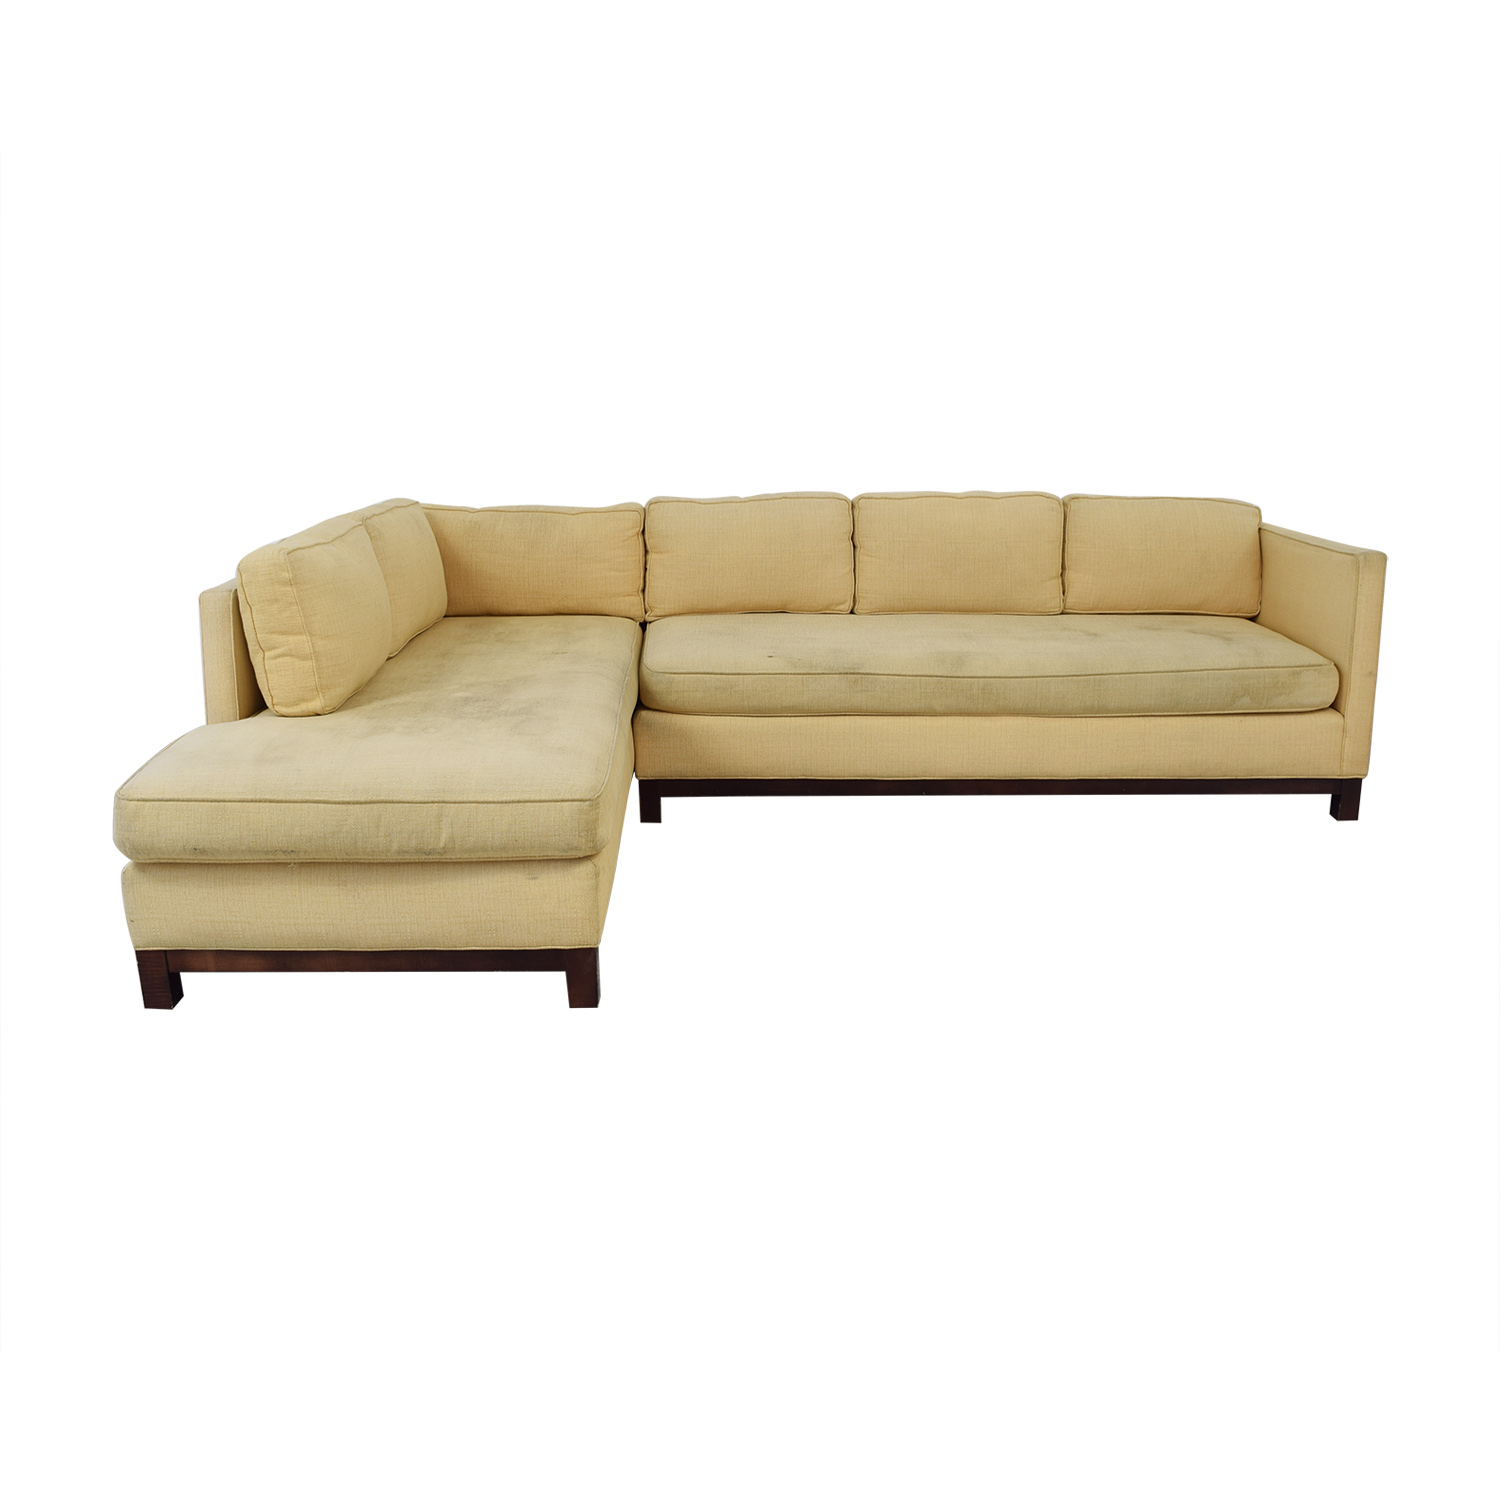 Mitchell Gold + Bob Williams Clifton Chaise Sectional Sofa / Sofas